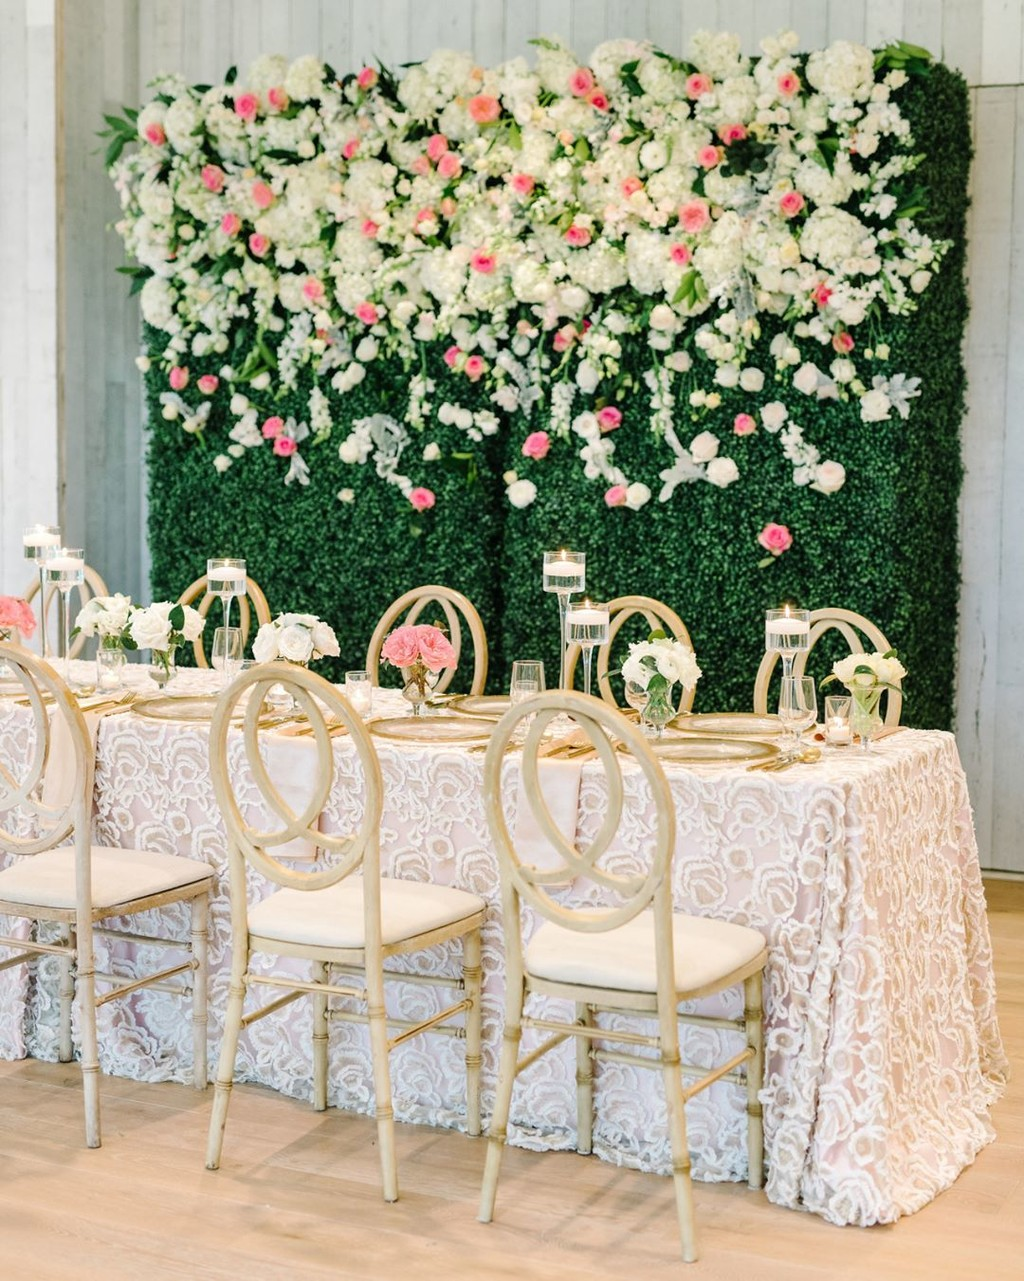 Flower walls are the perfect backdrop and this one was no exception! 📷